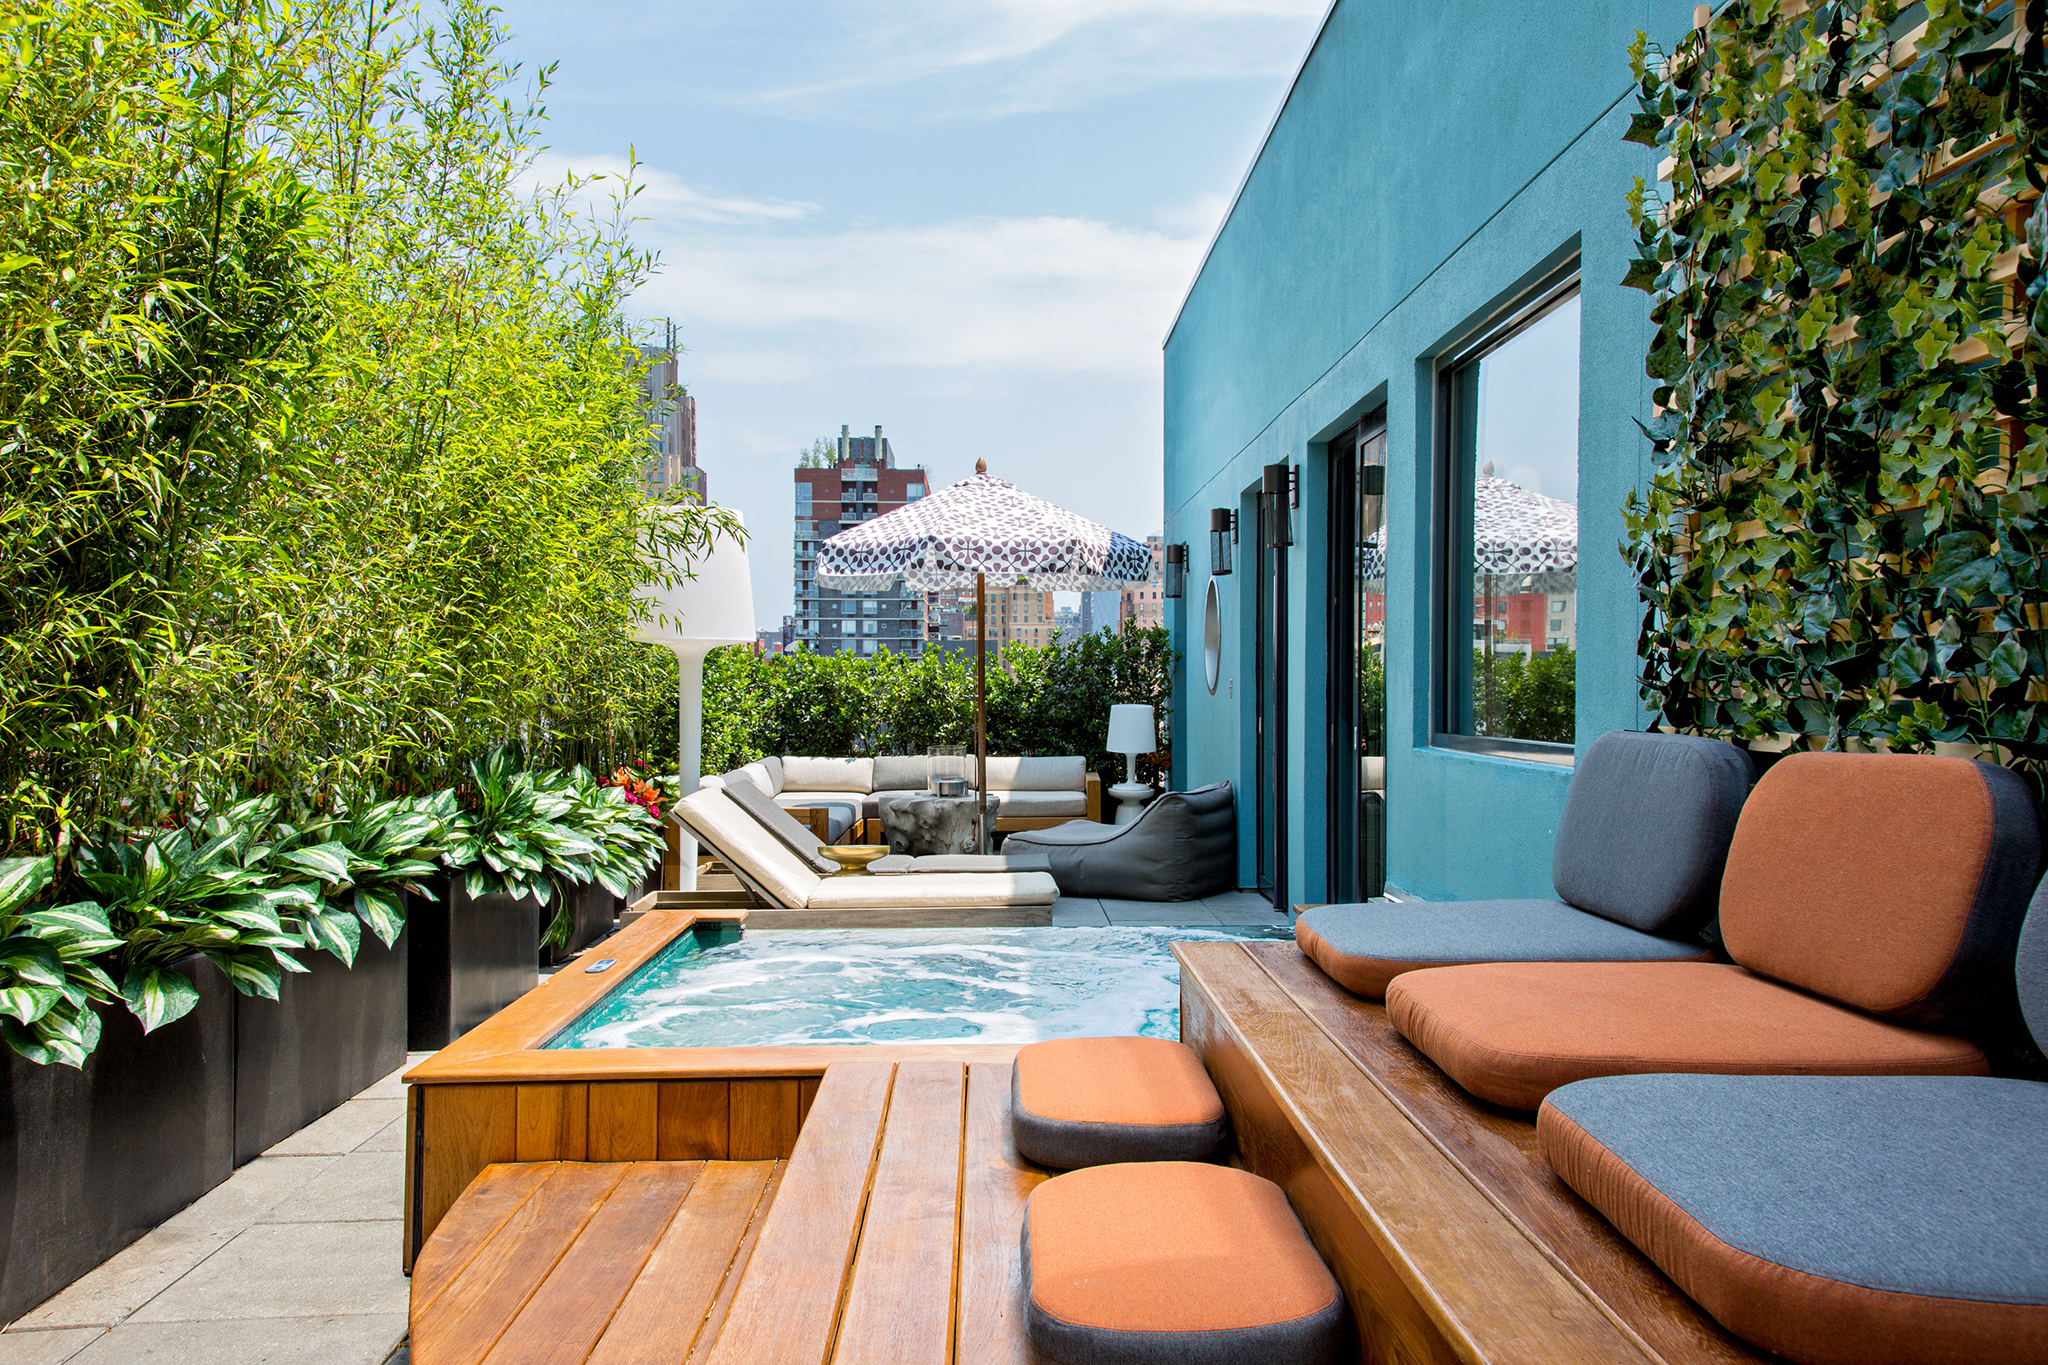 10 Best NYC Hotels With Jacuzzis In Room For A Relaxing Trip